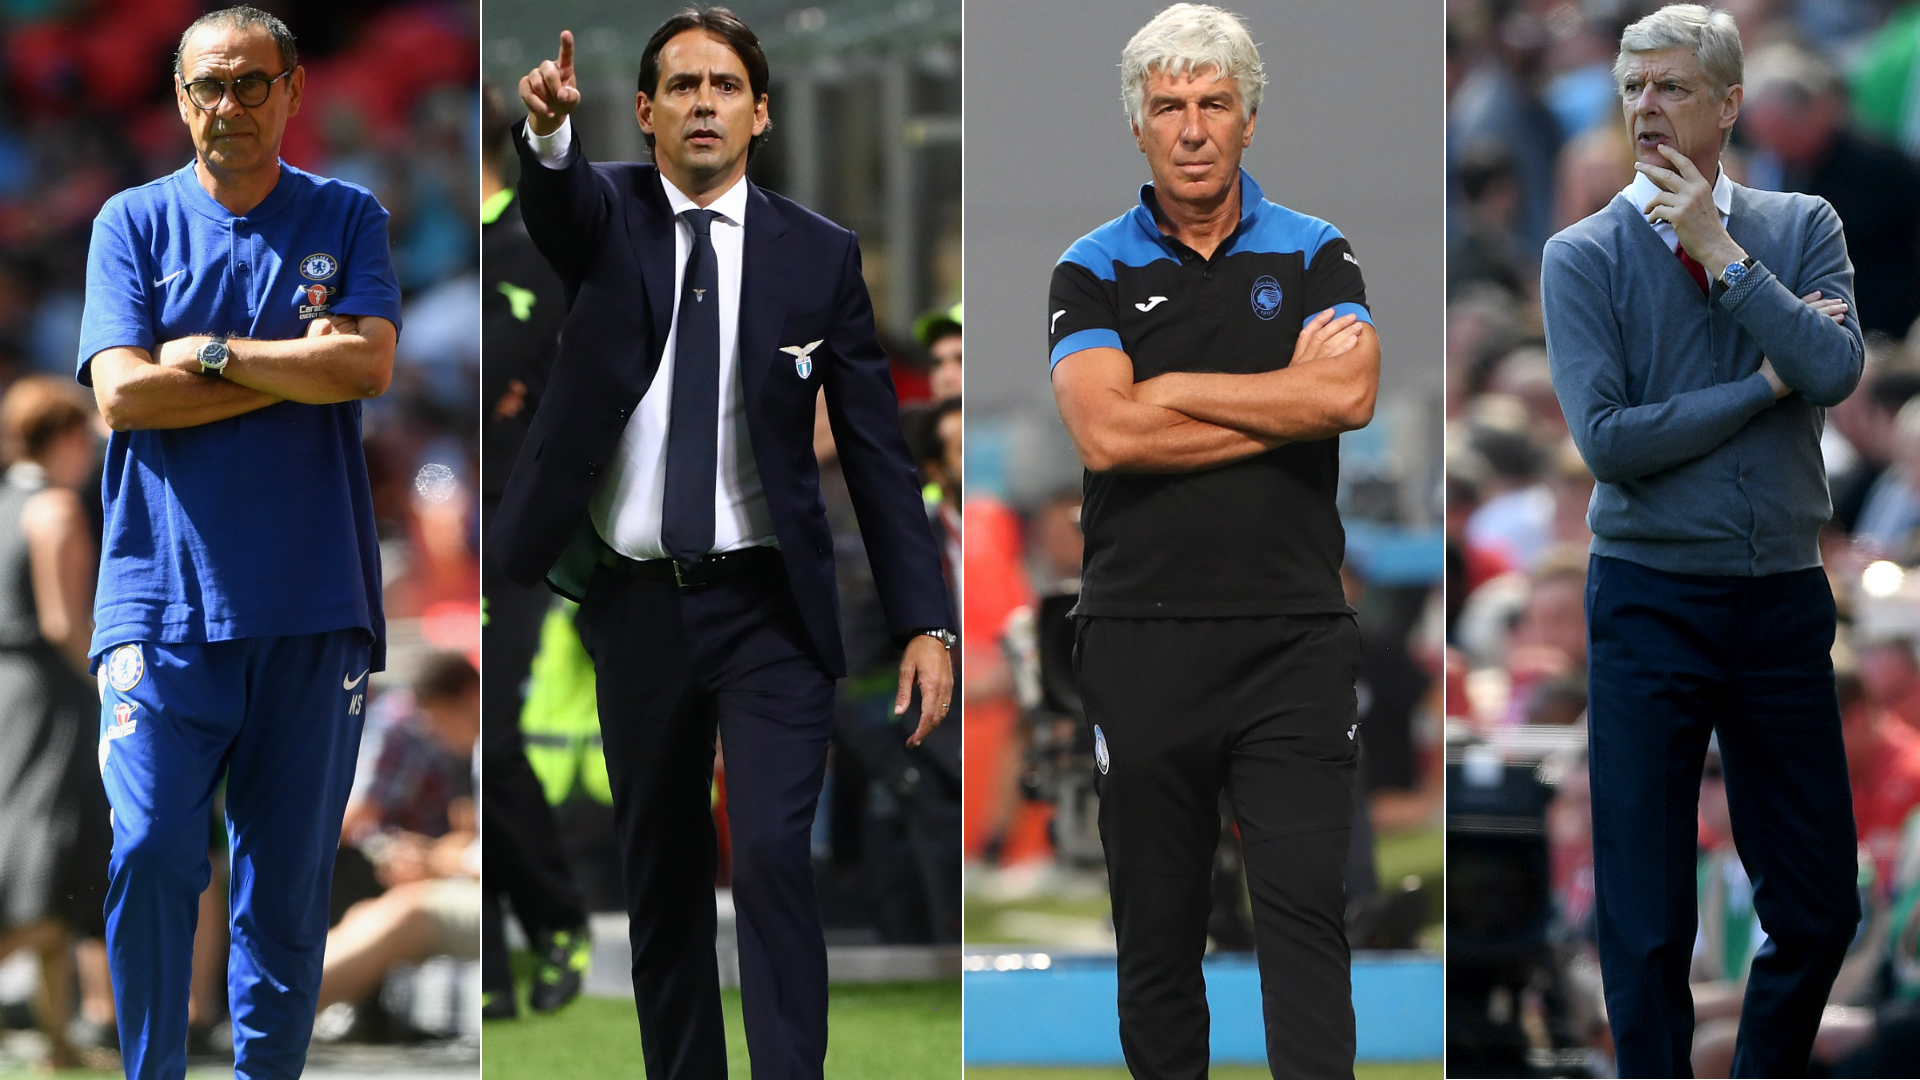 Wenger, Sarri, Inzaghi - who could replace Gattuso at AC Milan?